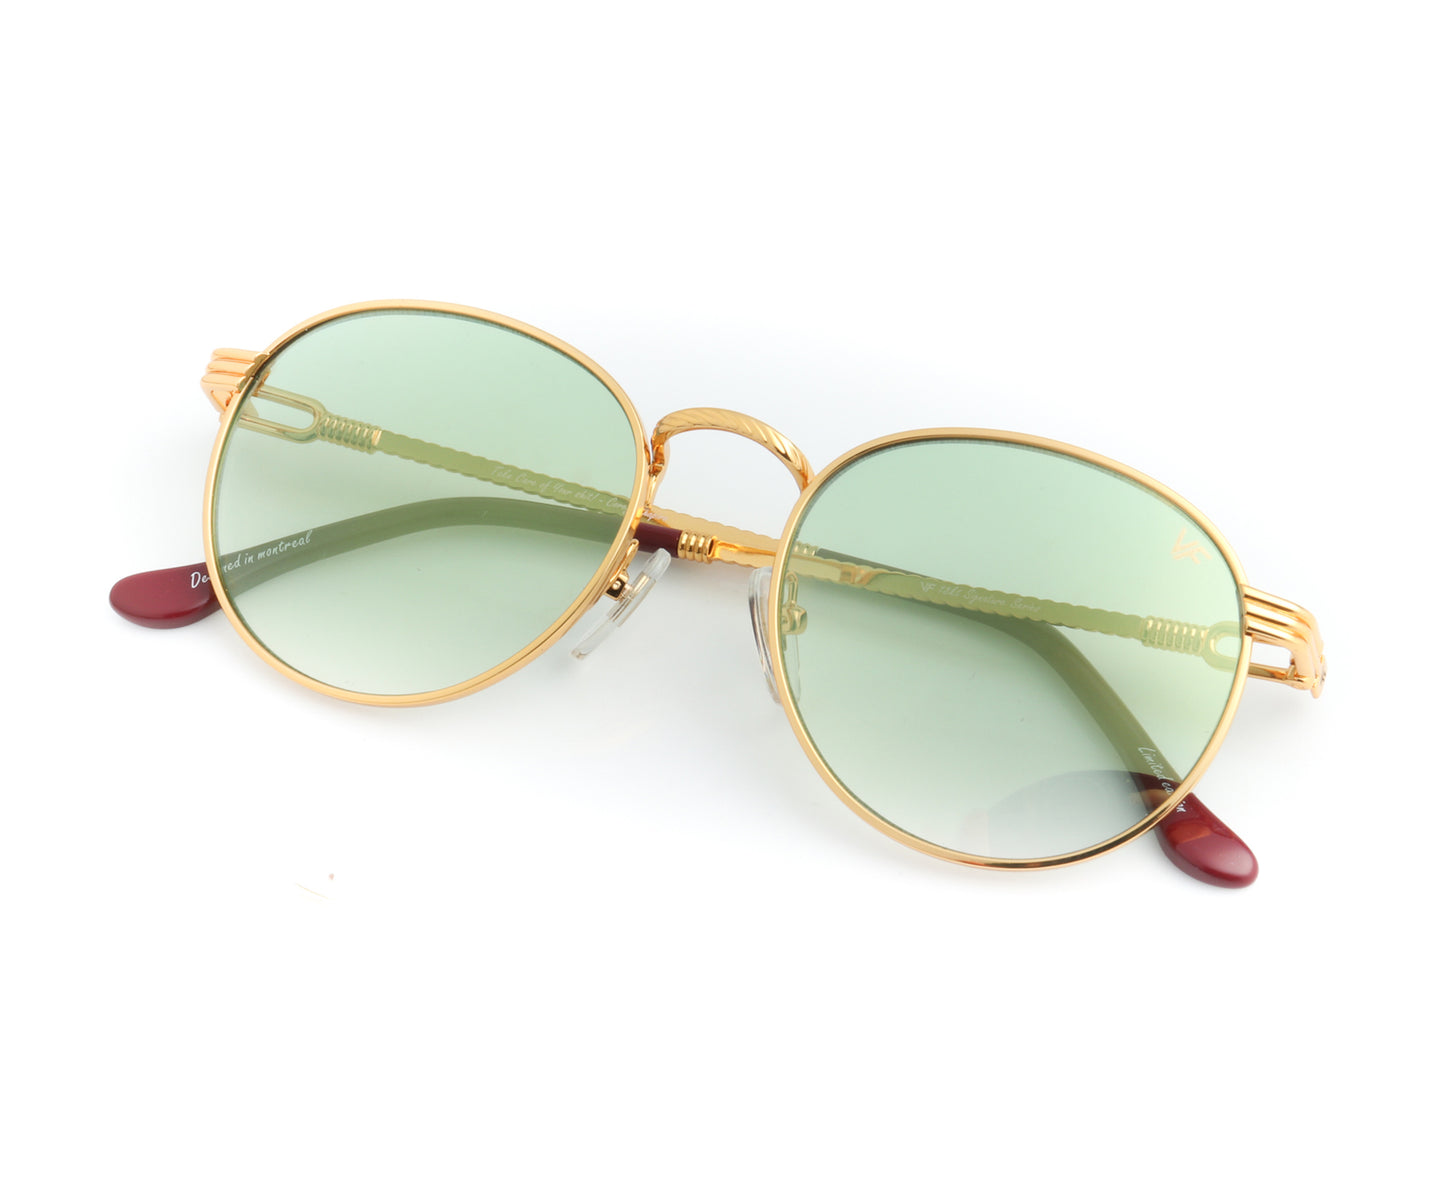 VF Miami Vice 18KT Gold (Money Green) Front, VF by Vintage Frames , glasses frames, eyeglasses online, eyeglass frames, mens glasses, womens glasses, buy glasses online, designer eyeglasses, vintage sunglasses, retro sunglasses, vintage glasses, sunglass, eyeglass, glasses, lens, vintage frames company, vf